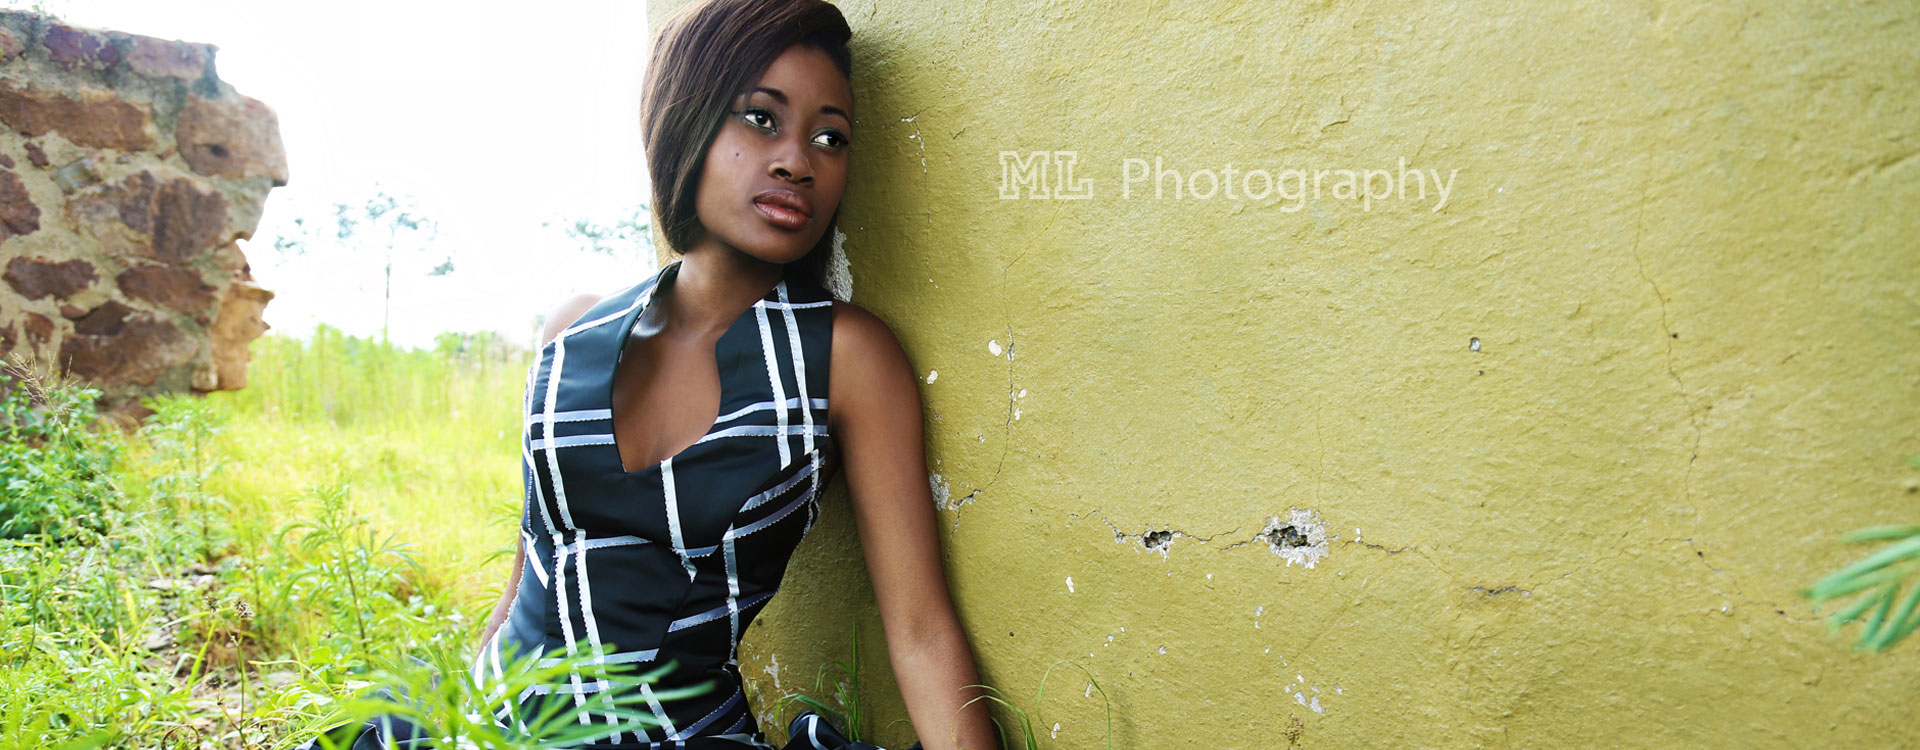 mlphotography-portfolios-photoshoot